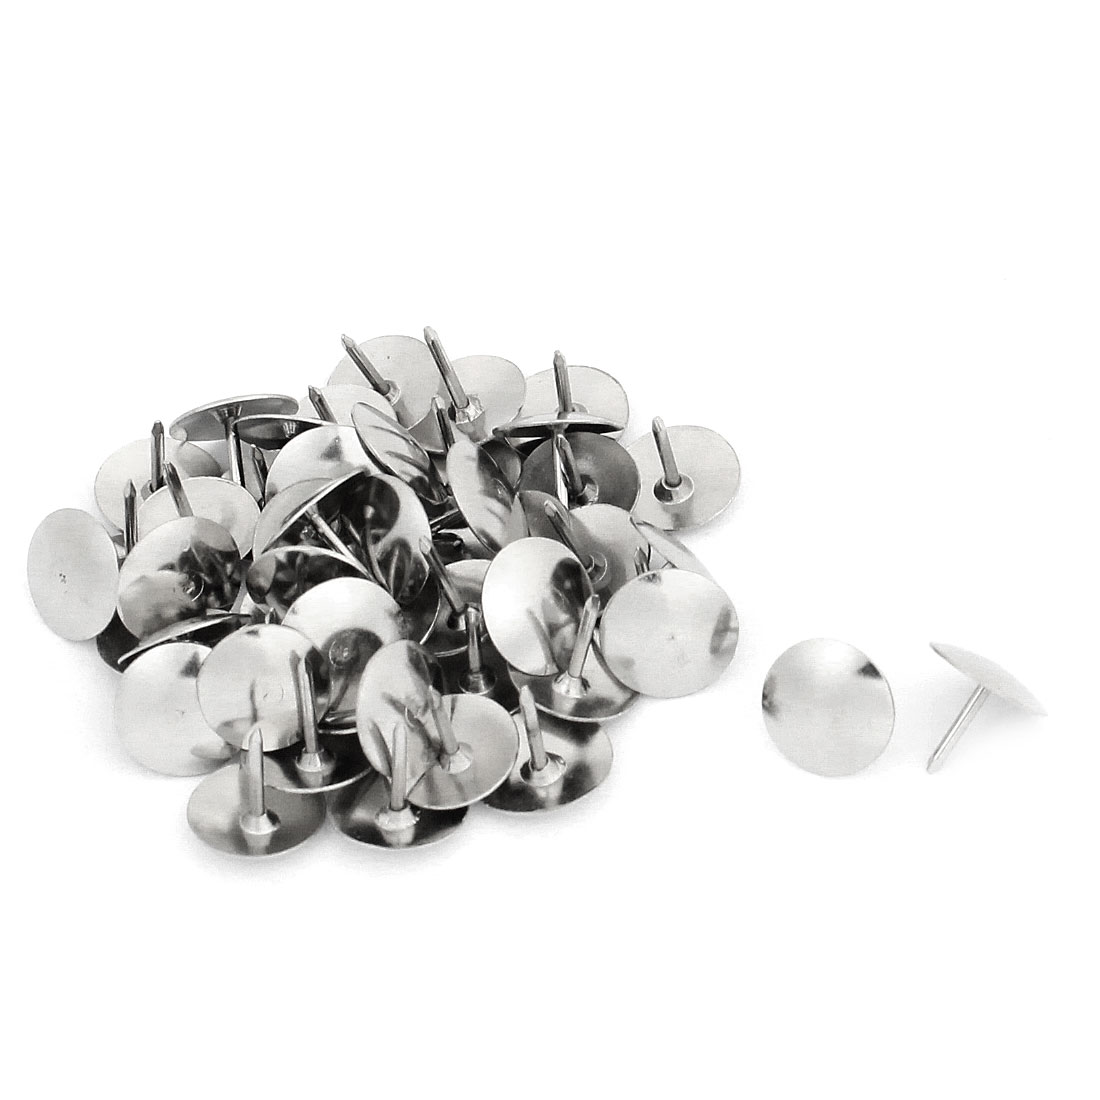 50 Pcs Office Silver Tone Metal Message Board Thumbtacks Drawing Map Push Pins